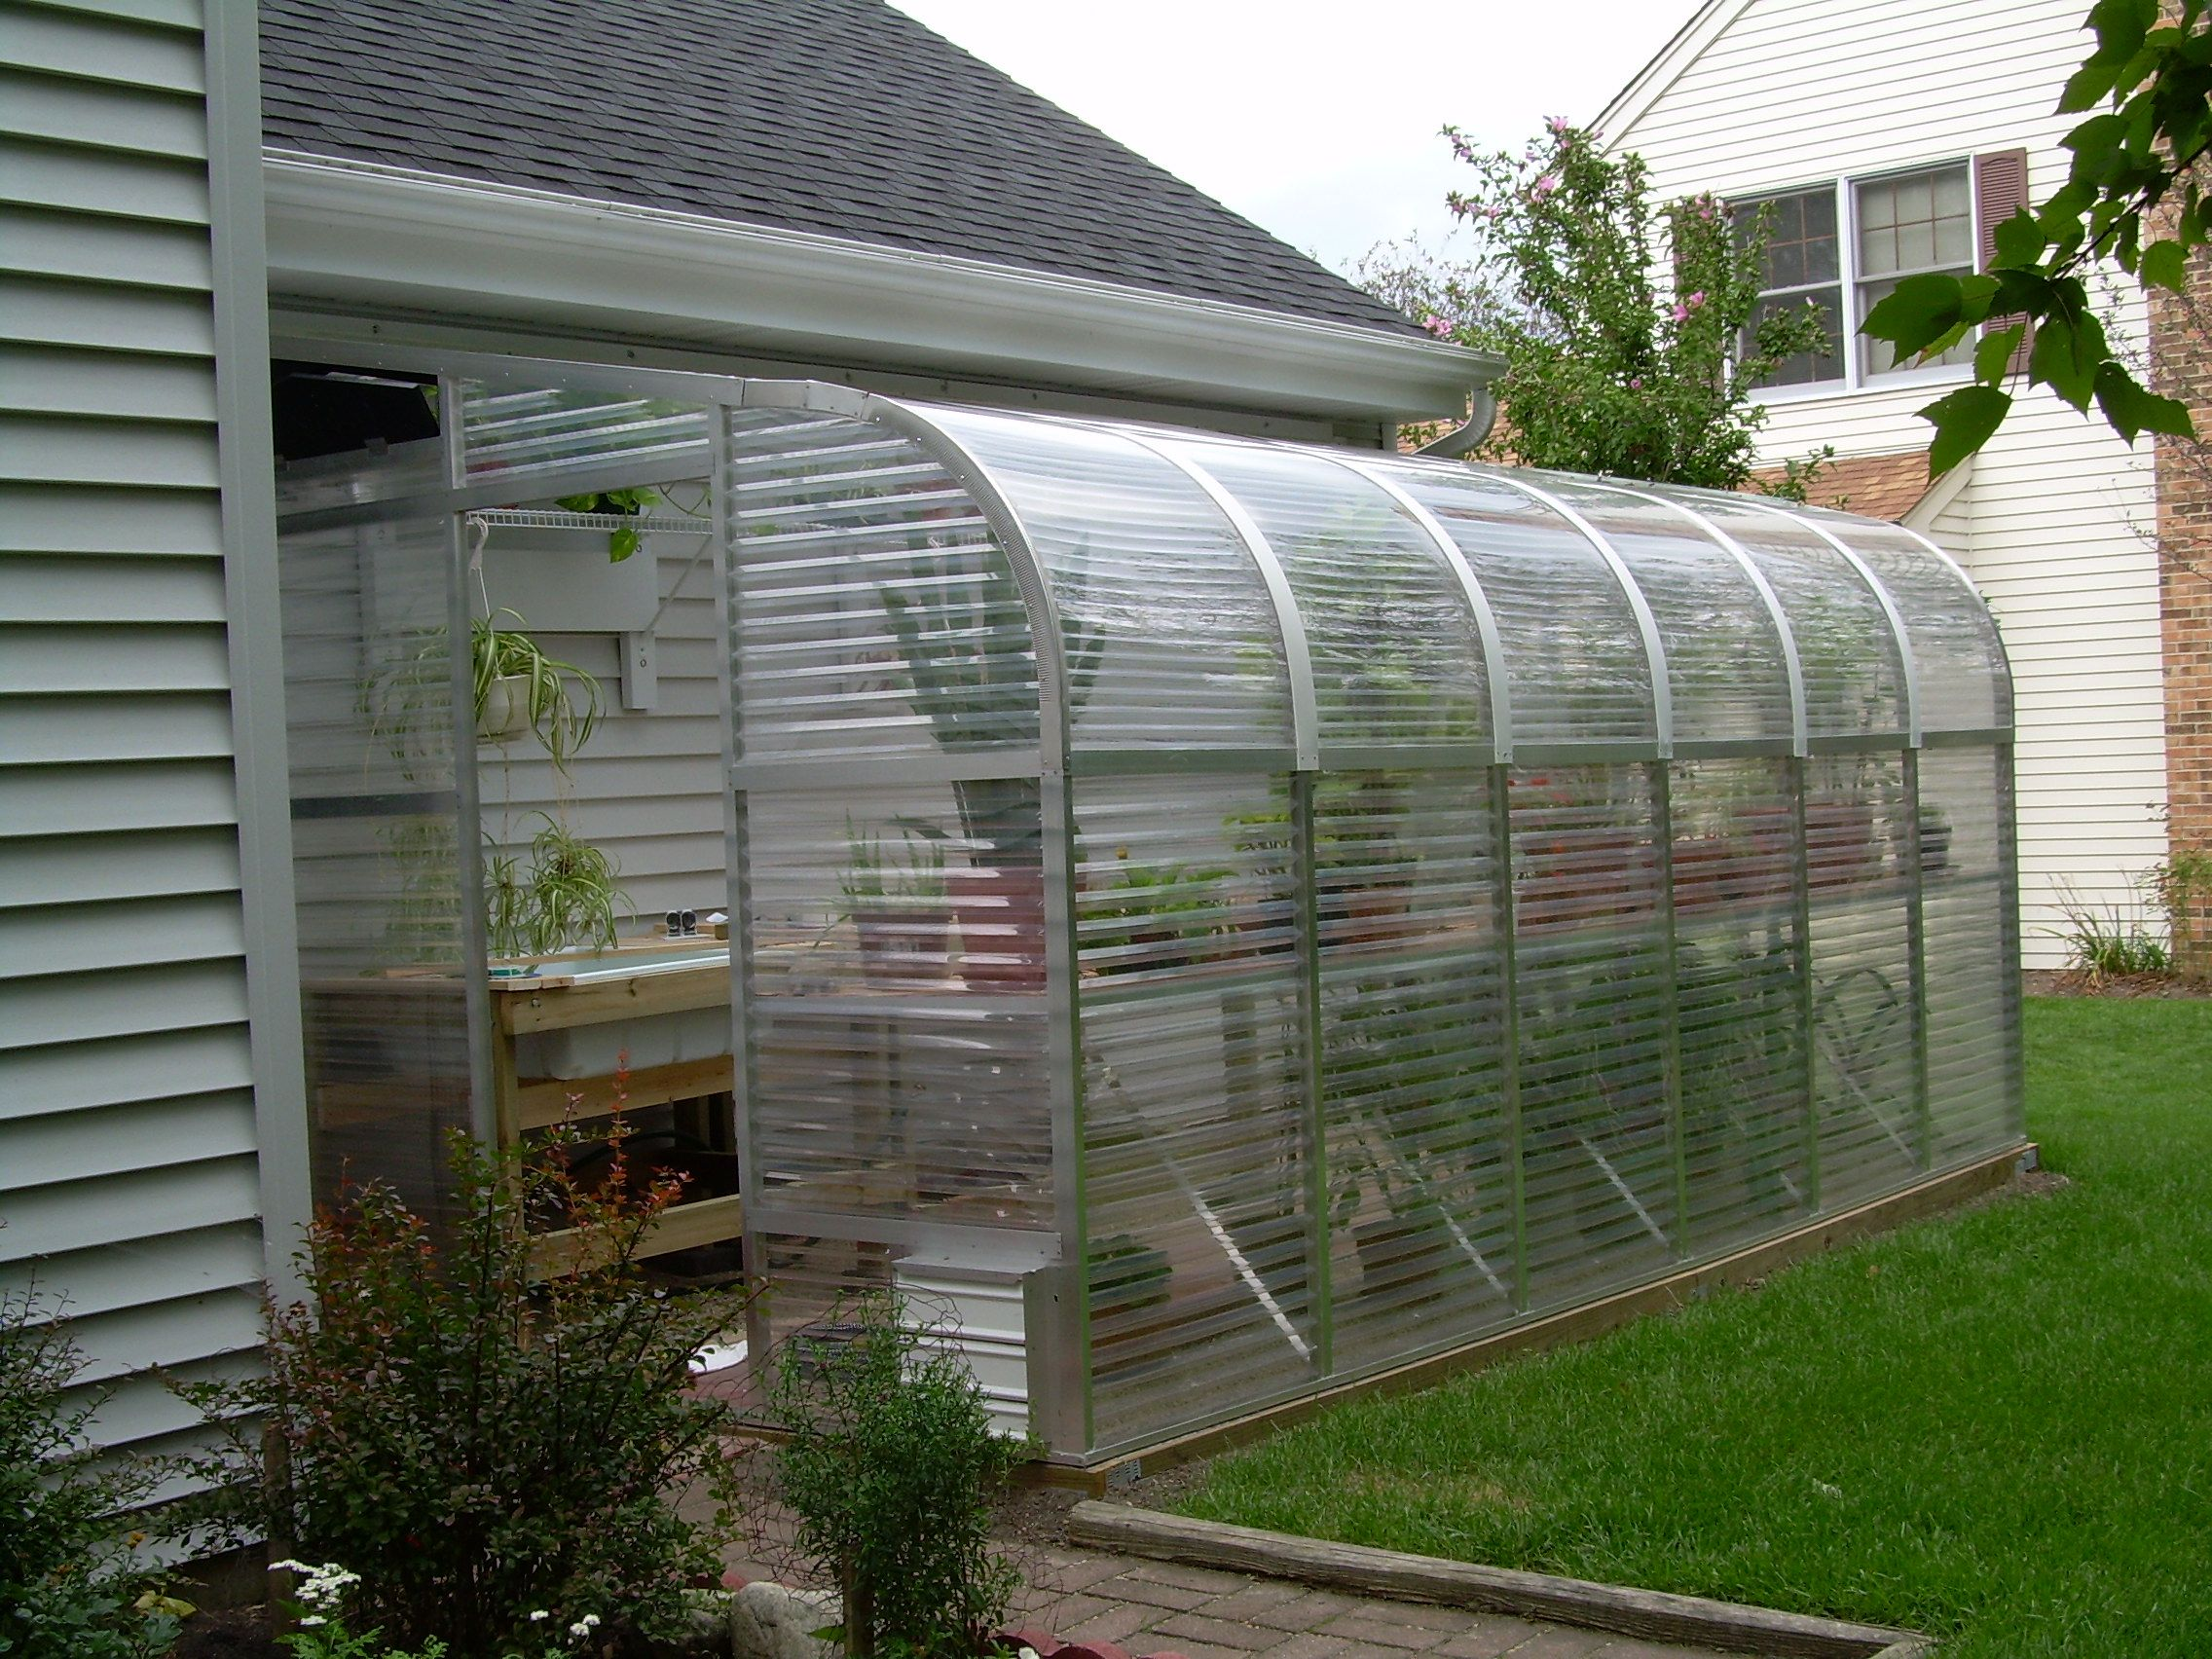 1700e 7 75x15 Lean To Sunglo Greenhouse That Is 13 Years